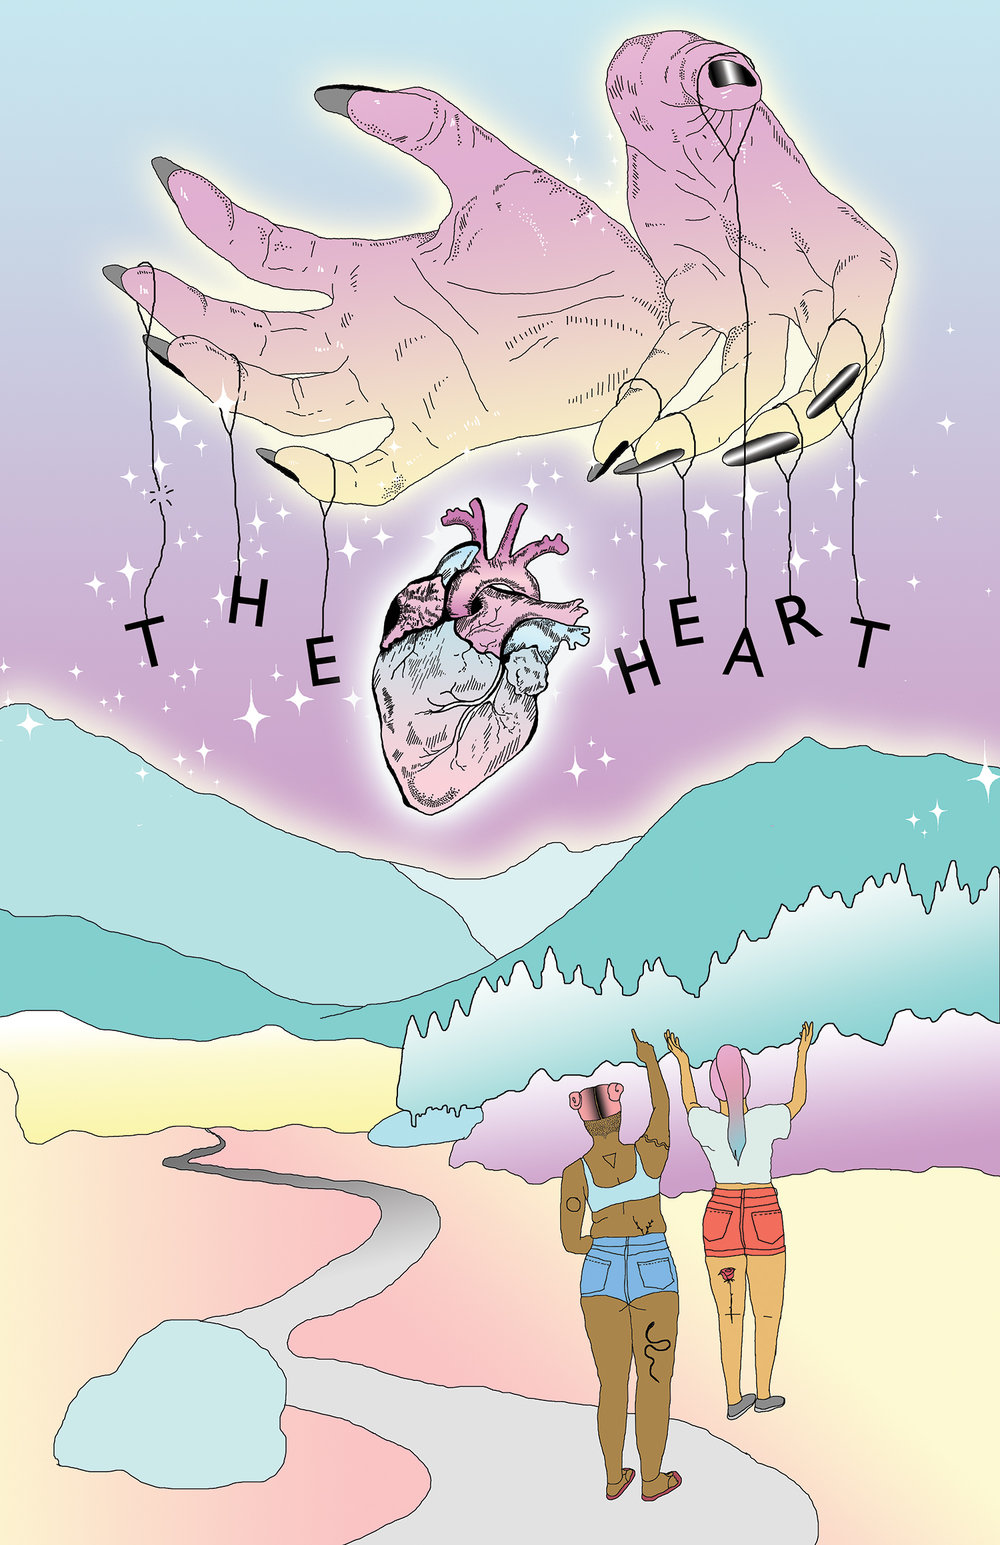 illustration for the heart.jpg